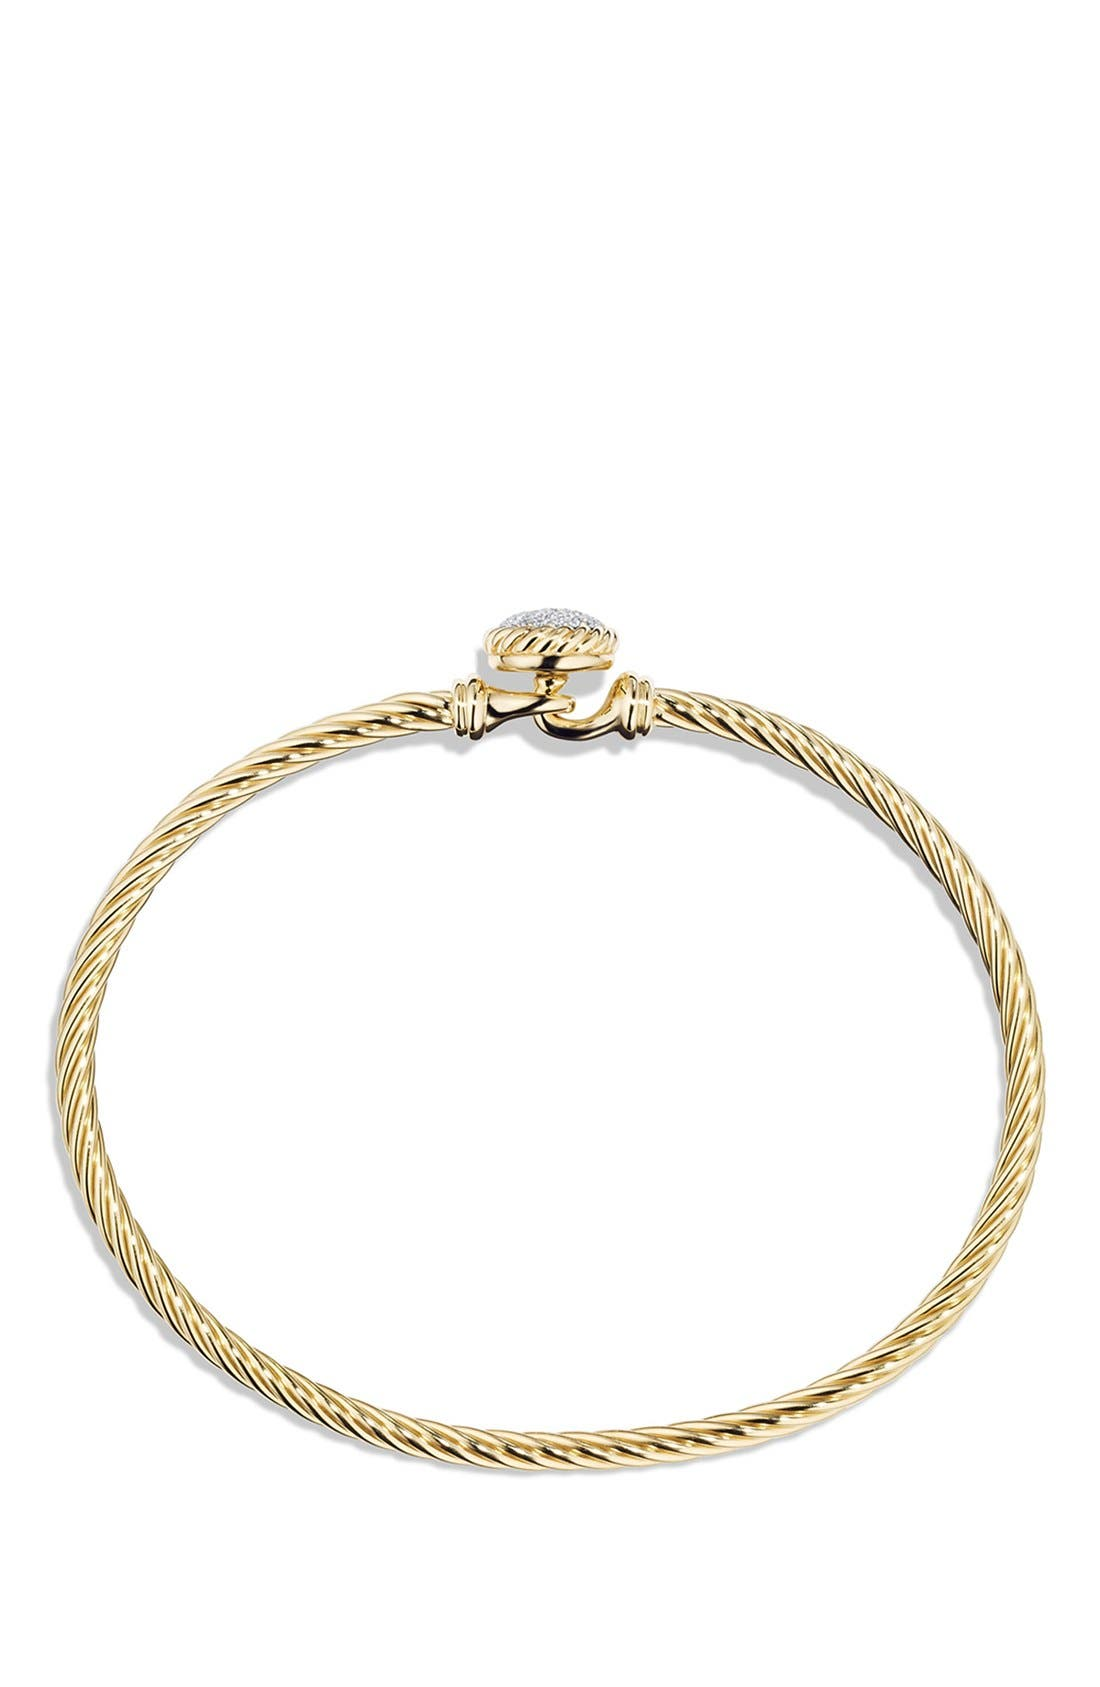 'Châtelaine' Bracelet with Diamonds in 18K Gold,                             Alternate thumbnail 2, color,                             Diamond